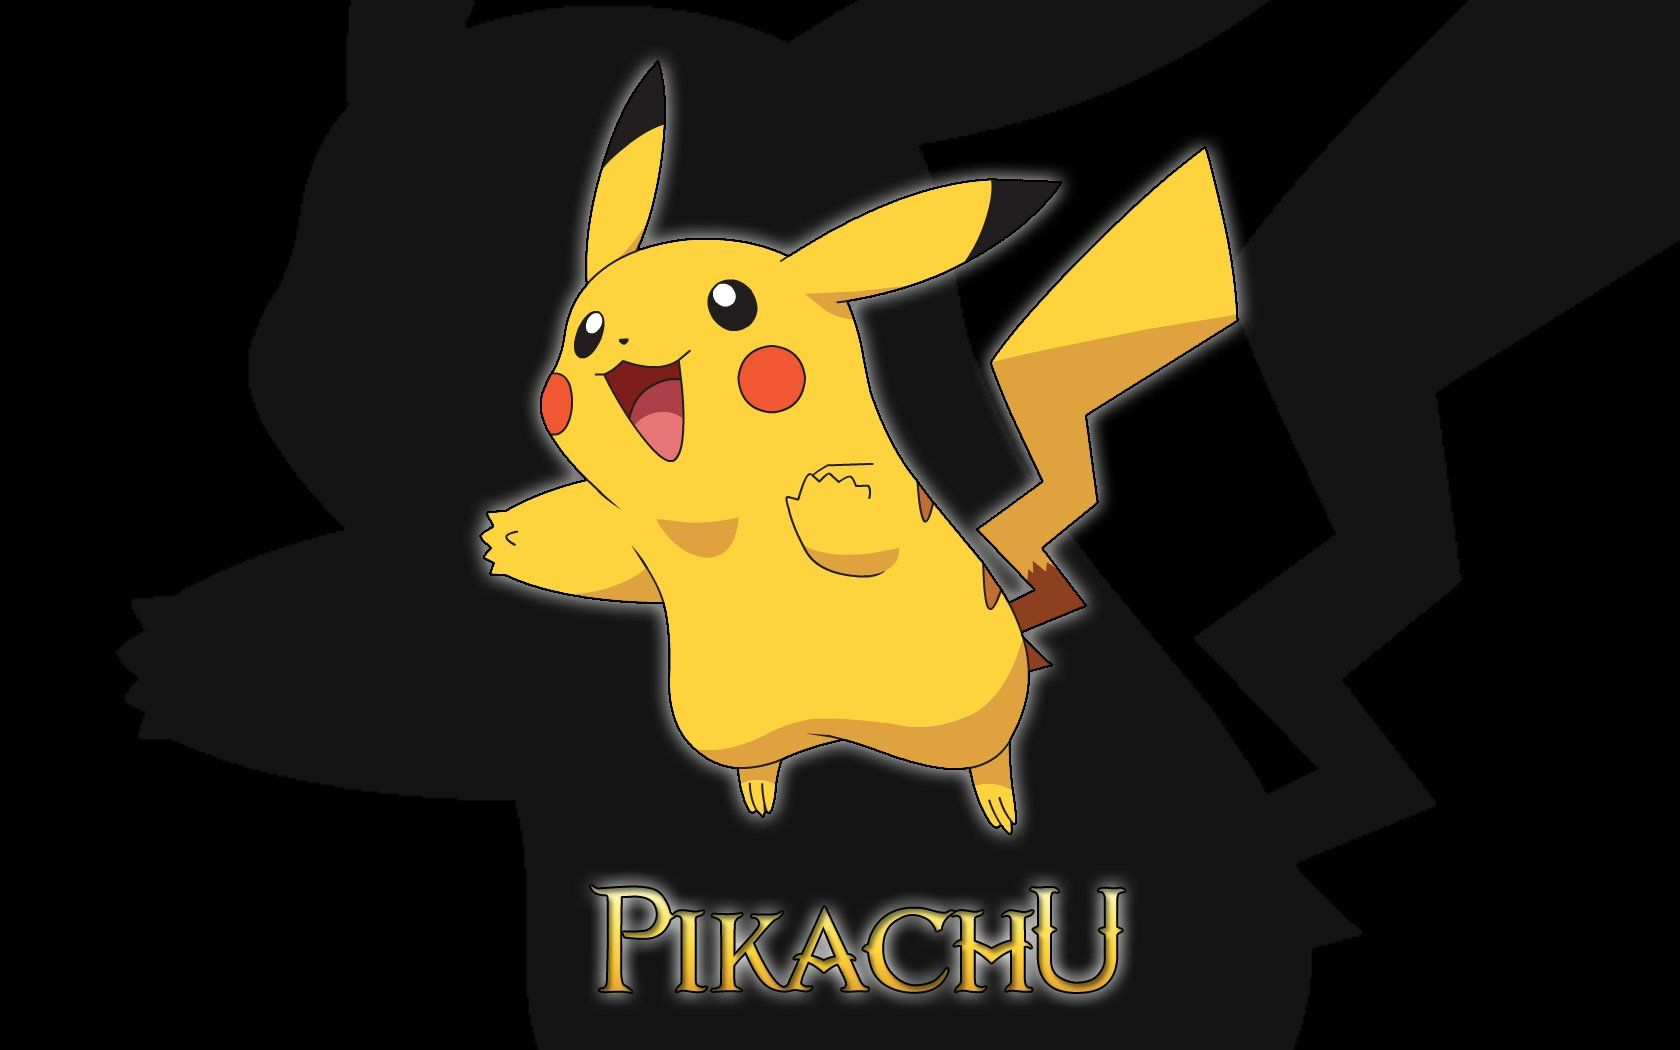 Download Shinobi Pikachu wallpapers to your cell phone